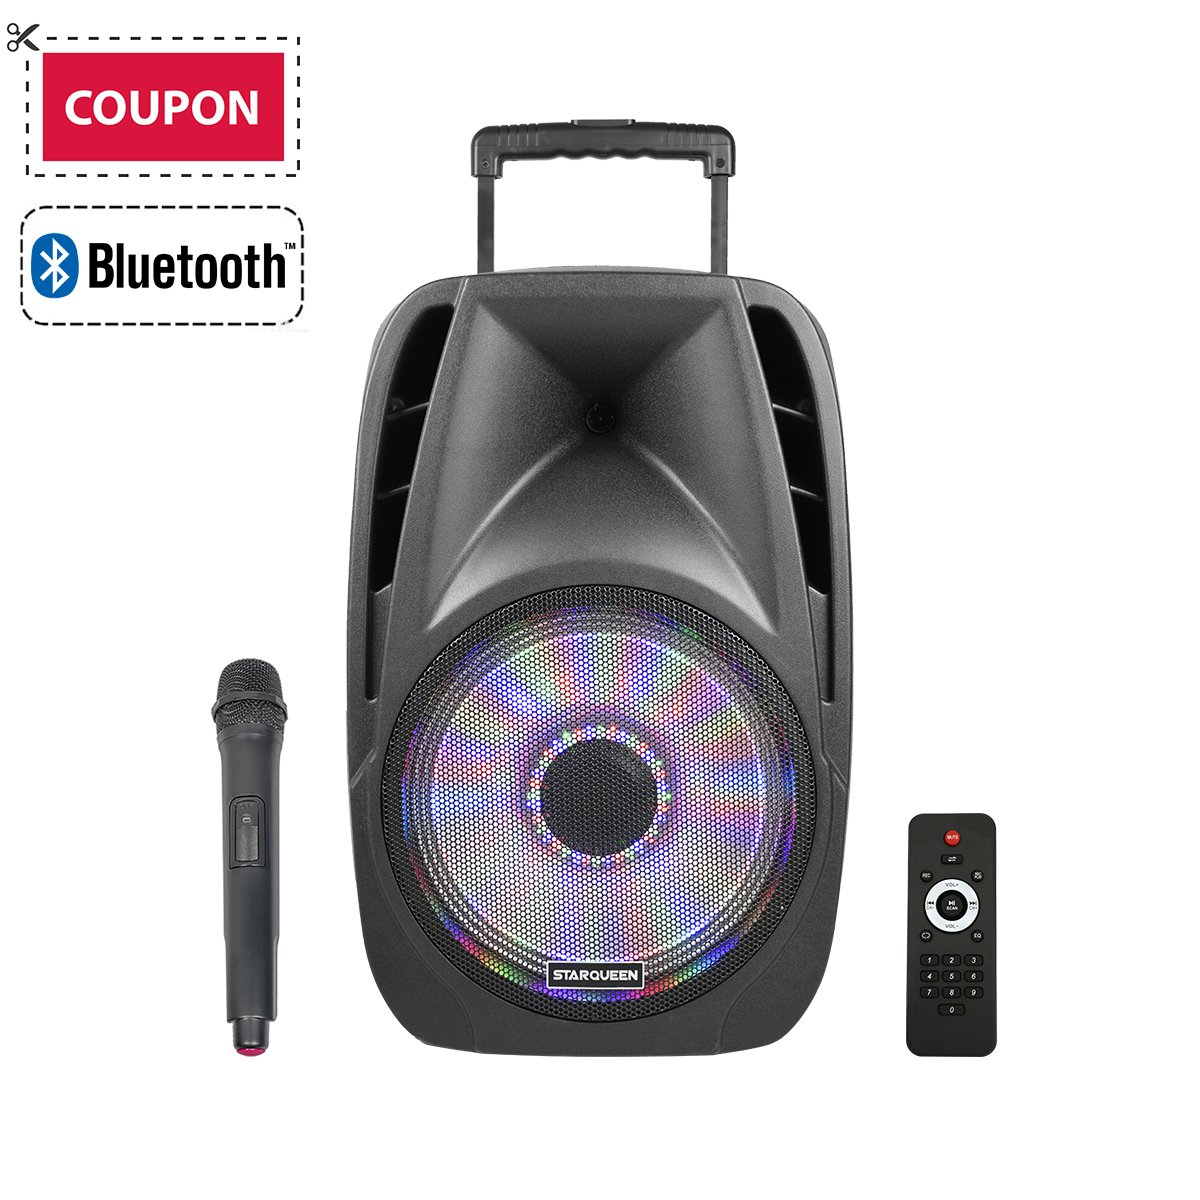 STARQUEEN 12'' Portable Bluetooth PA Audio Speaker System with Wireless Handheld Microphone, Mic/Guitar Jack, USB/SD/FM Radio Function, Telescoping Handle & Wheels, Black